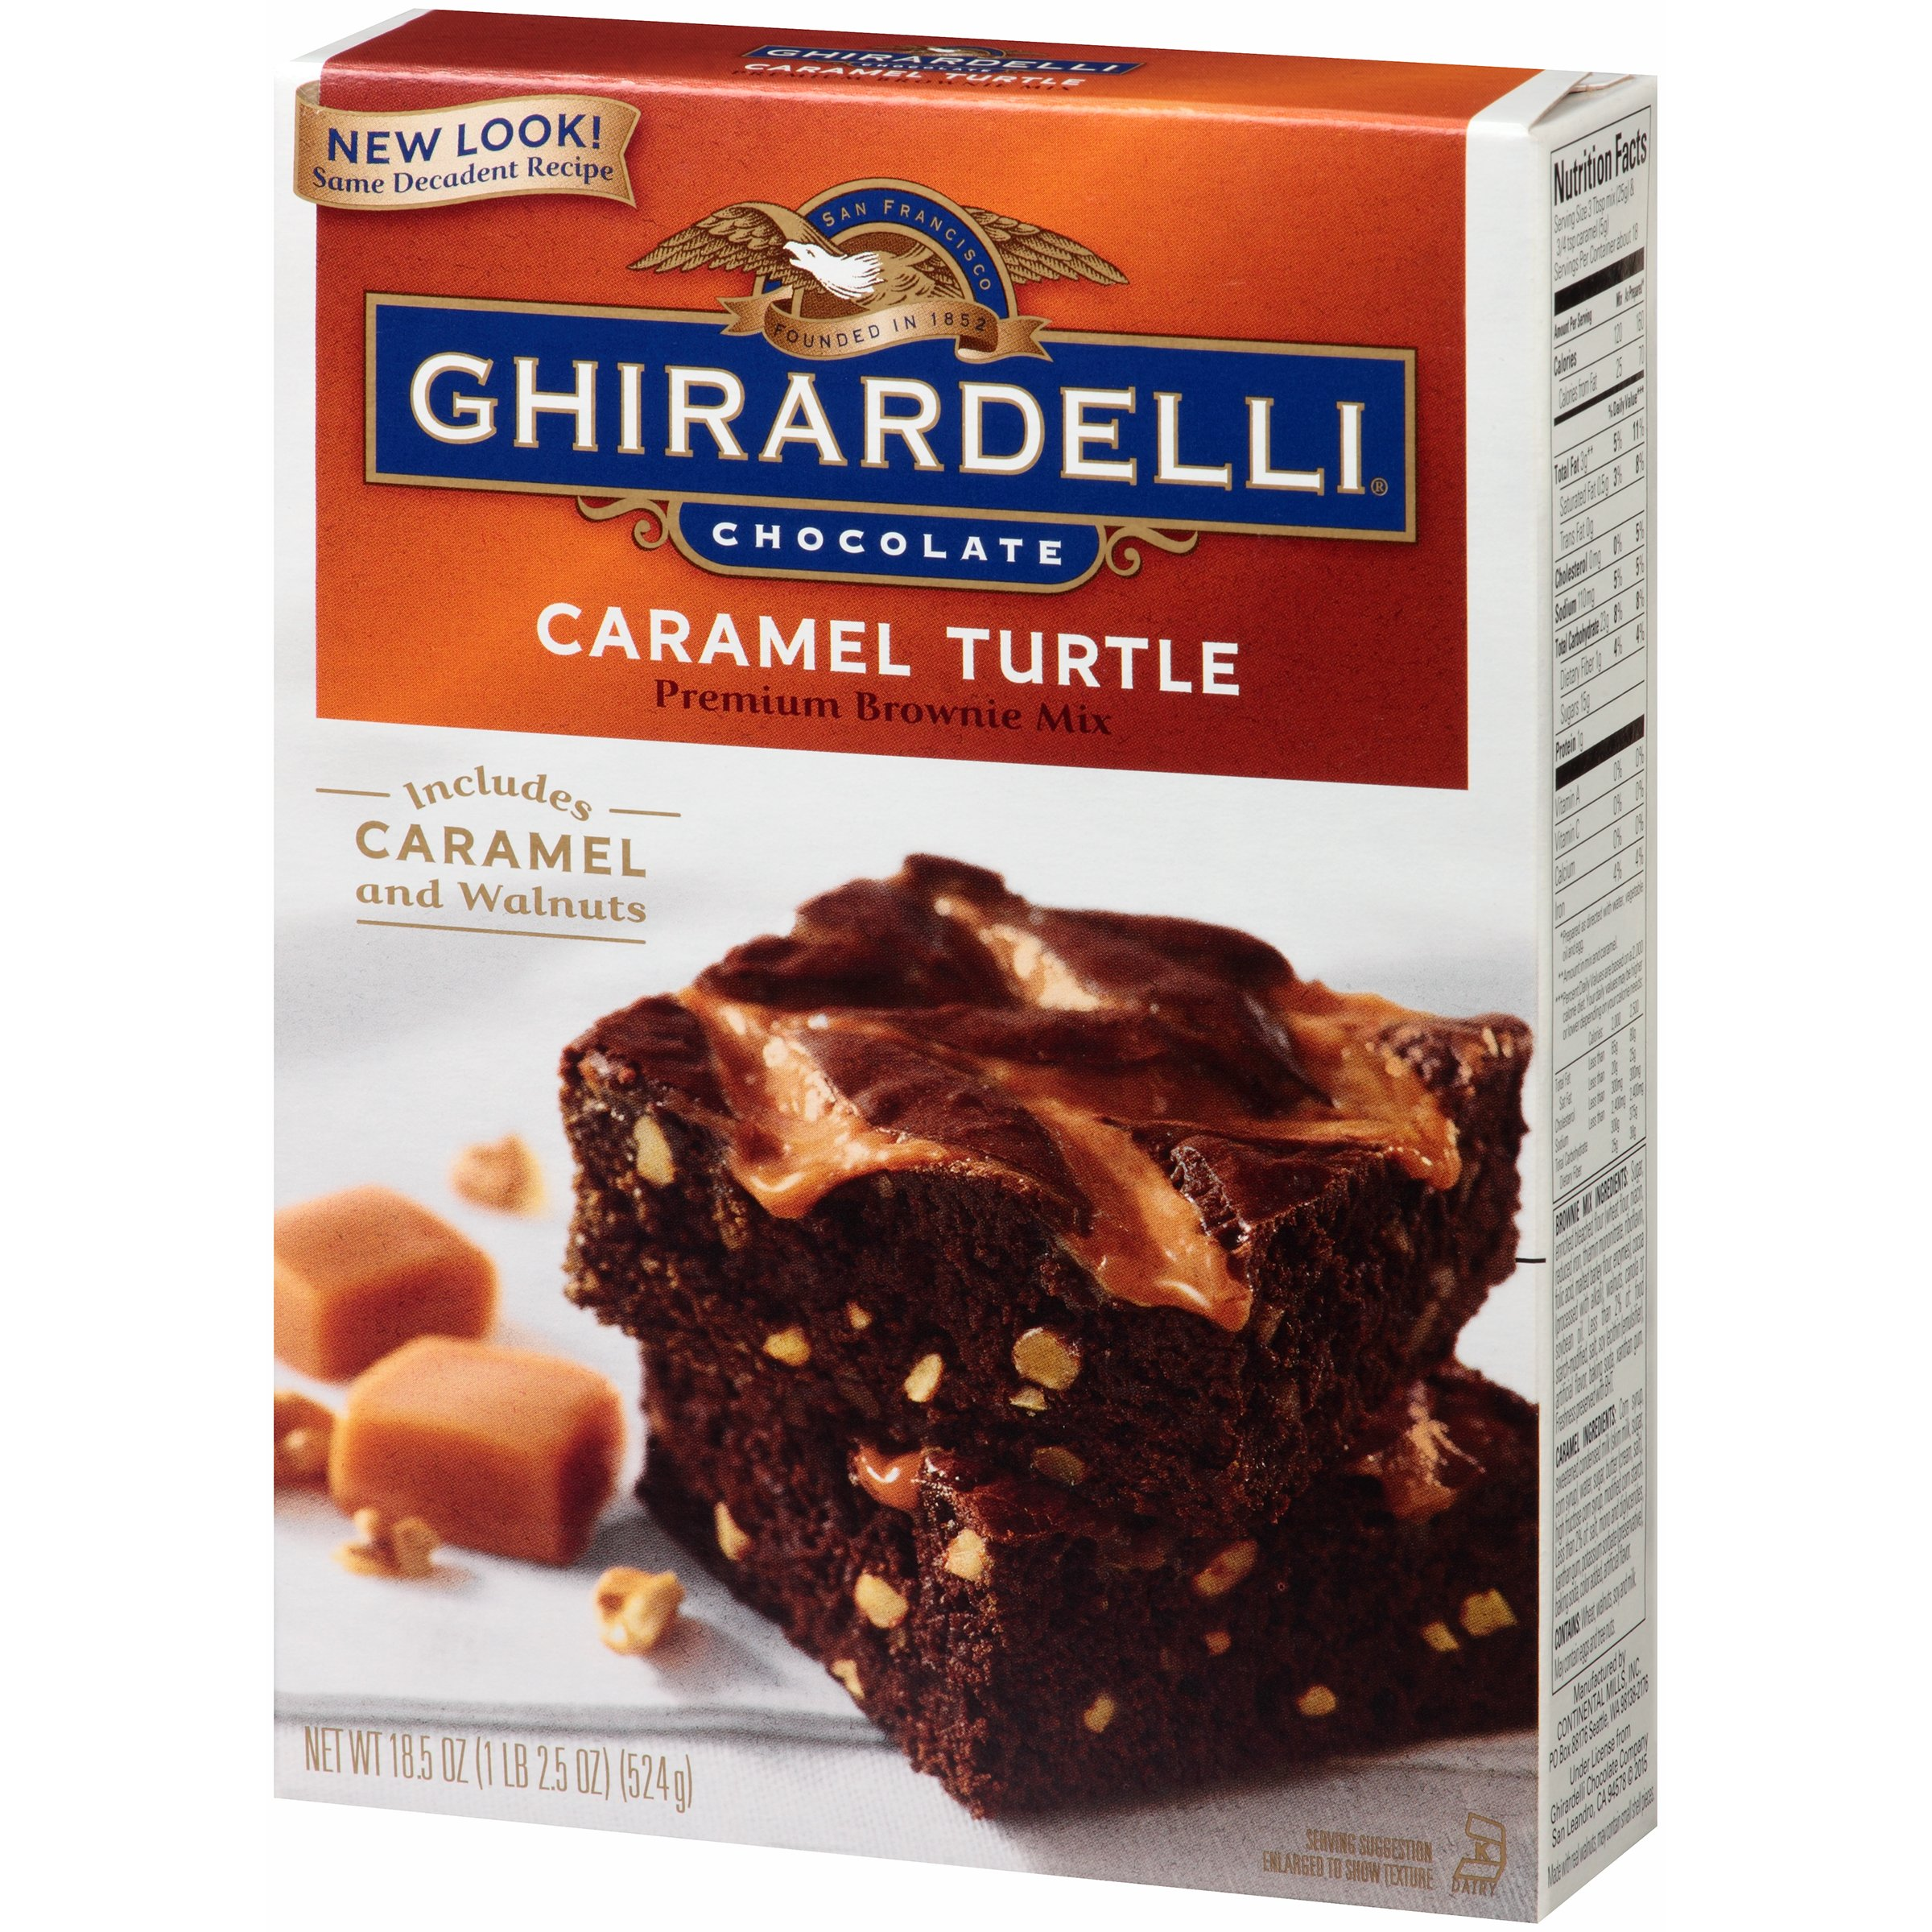 Ghirardelli Cake Mix Recipe